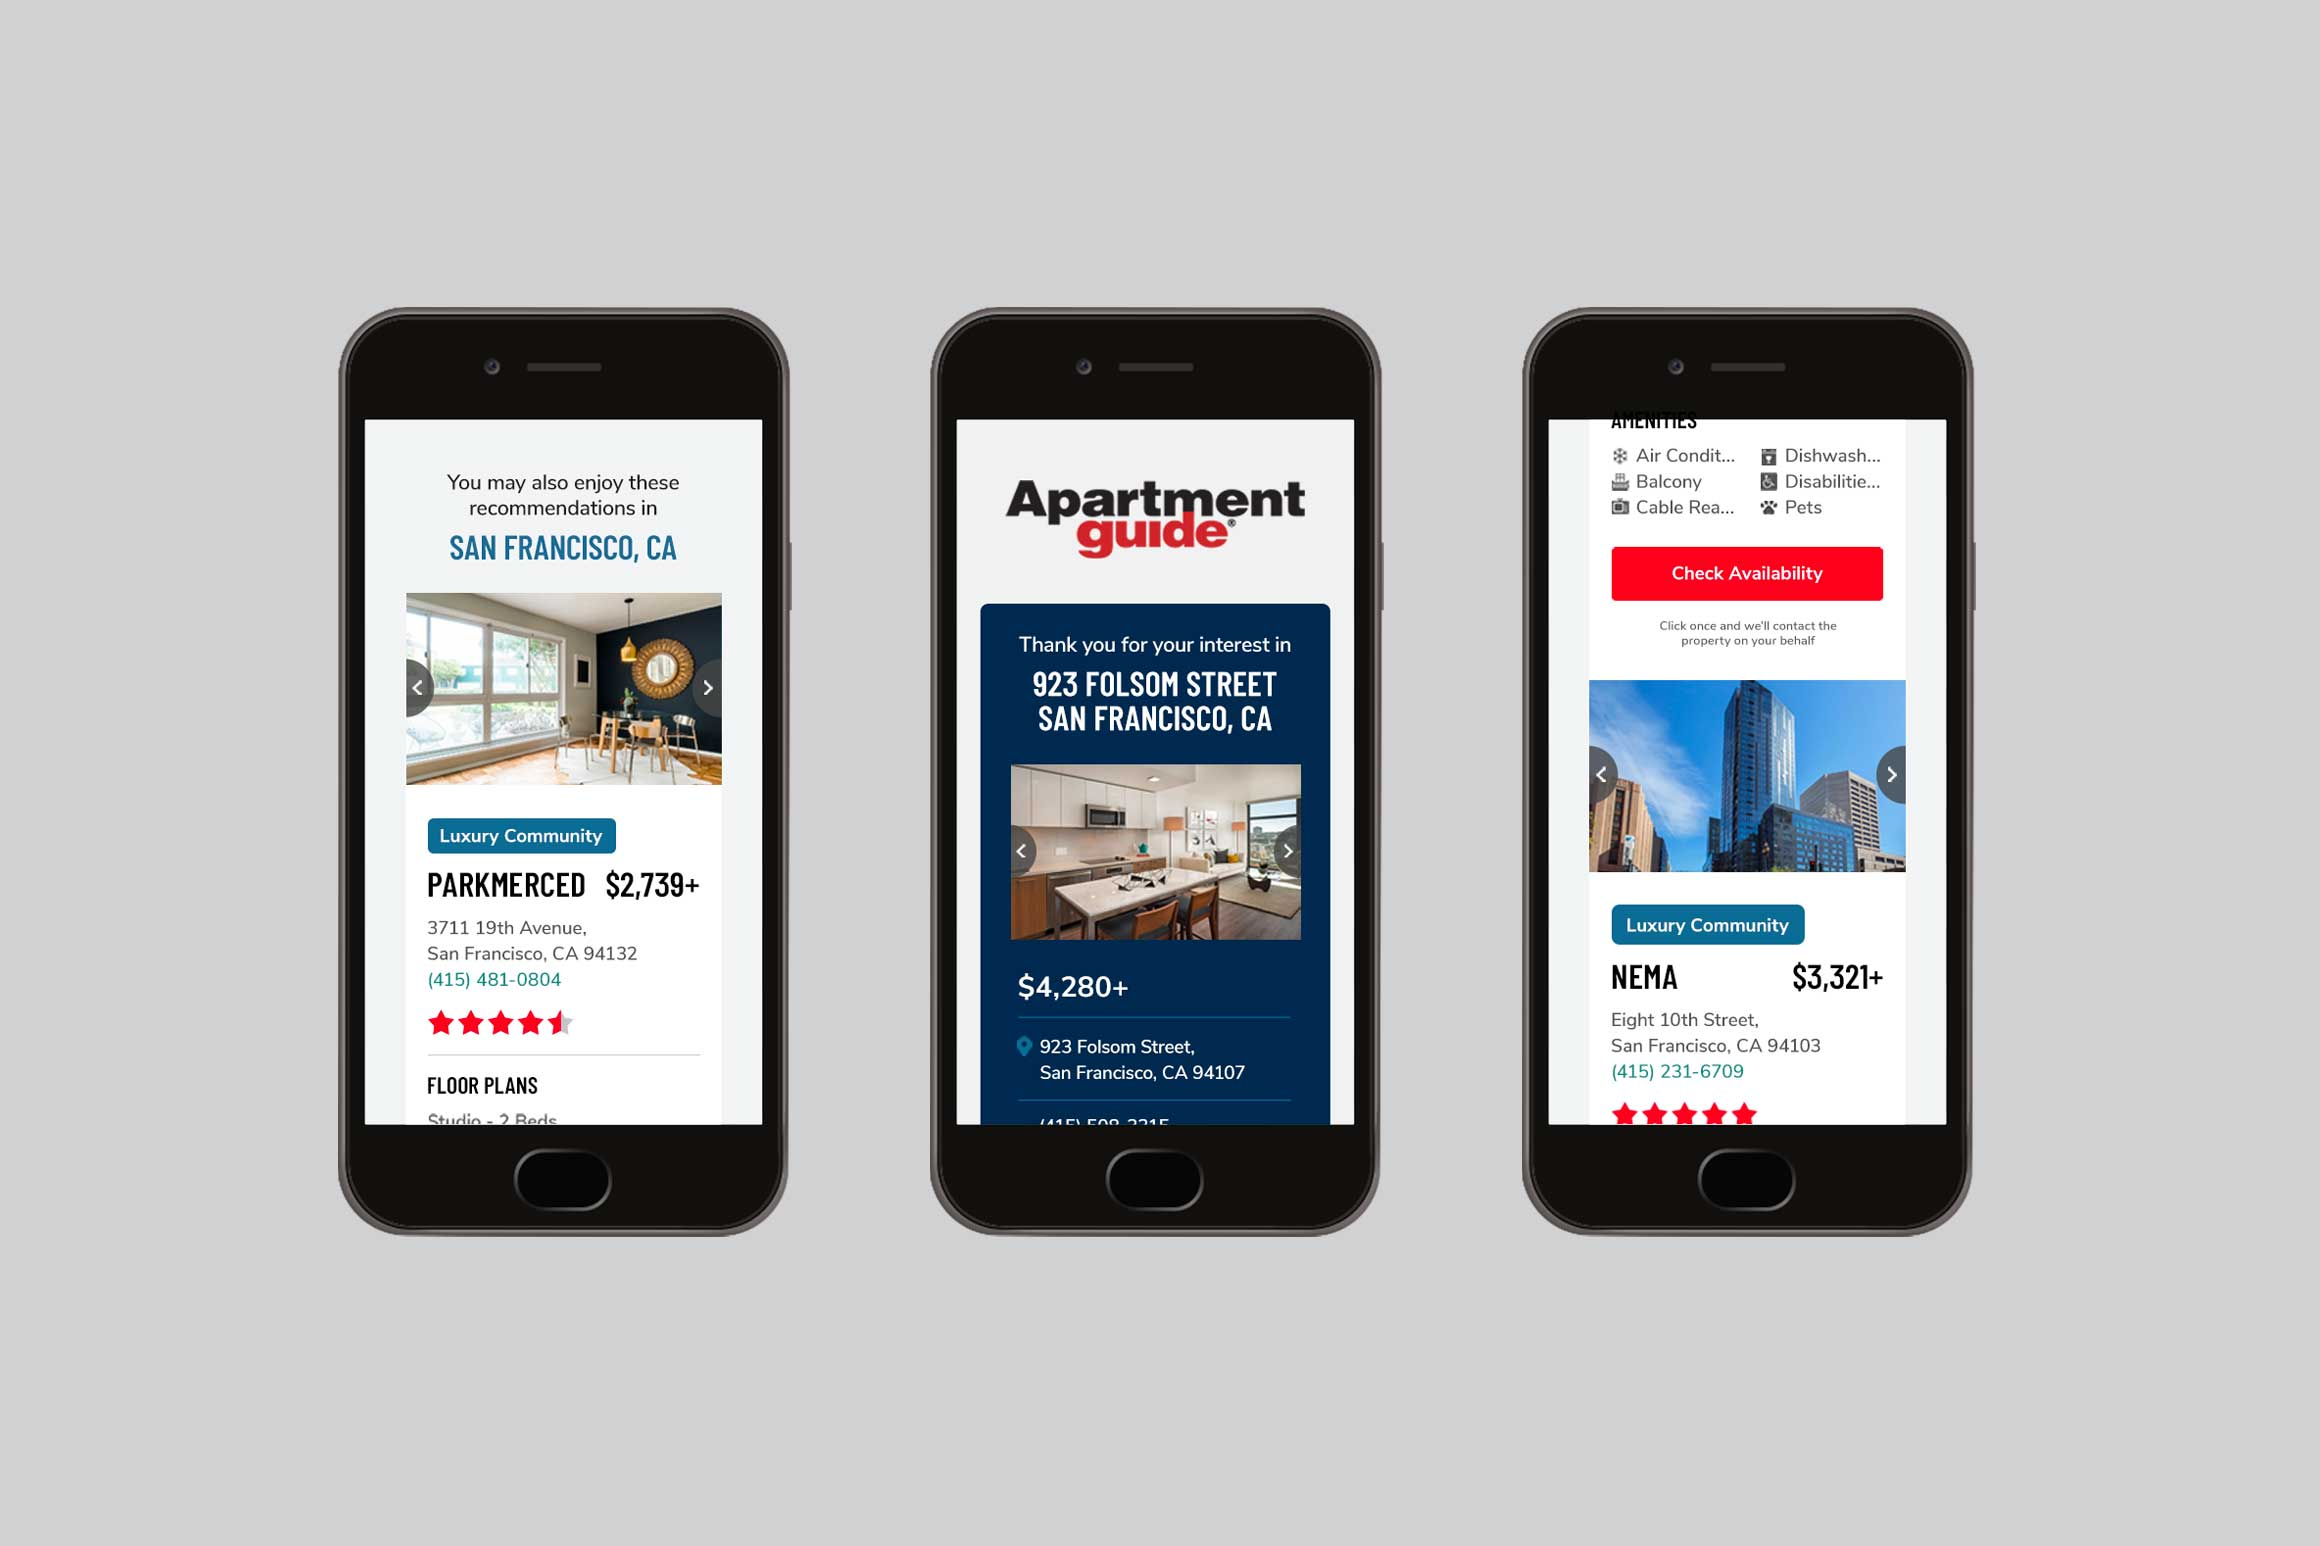 Apartment Guide Email Marketing